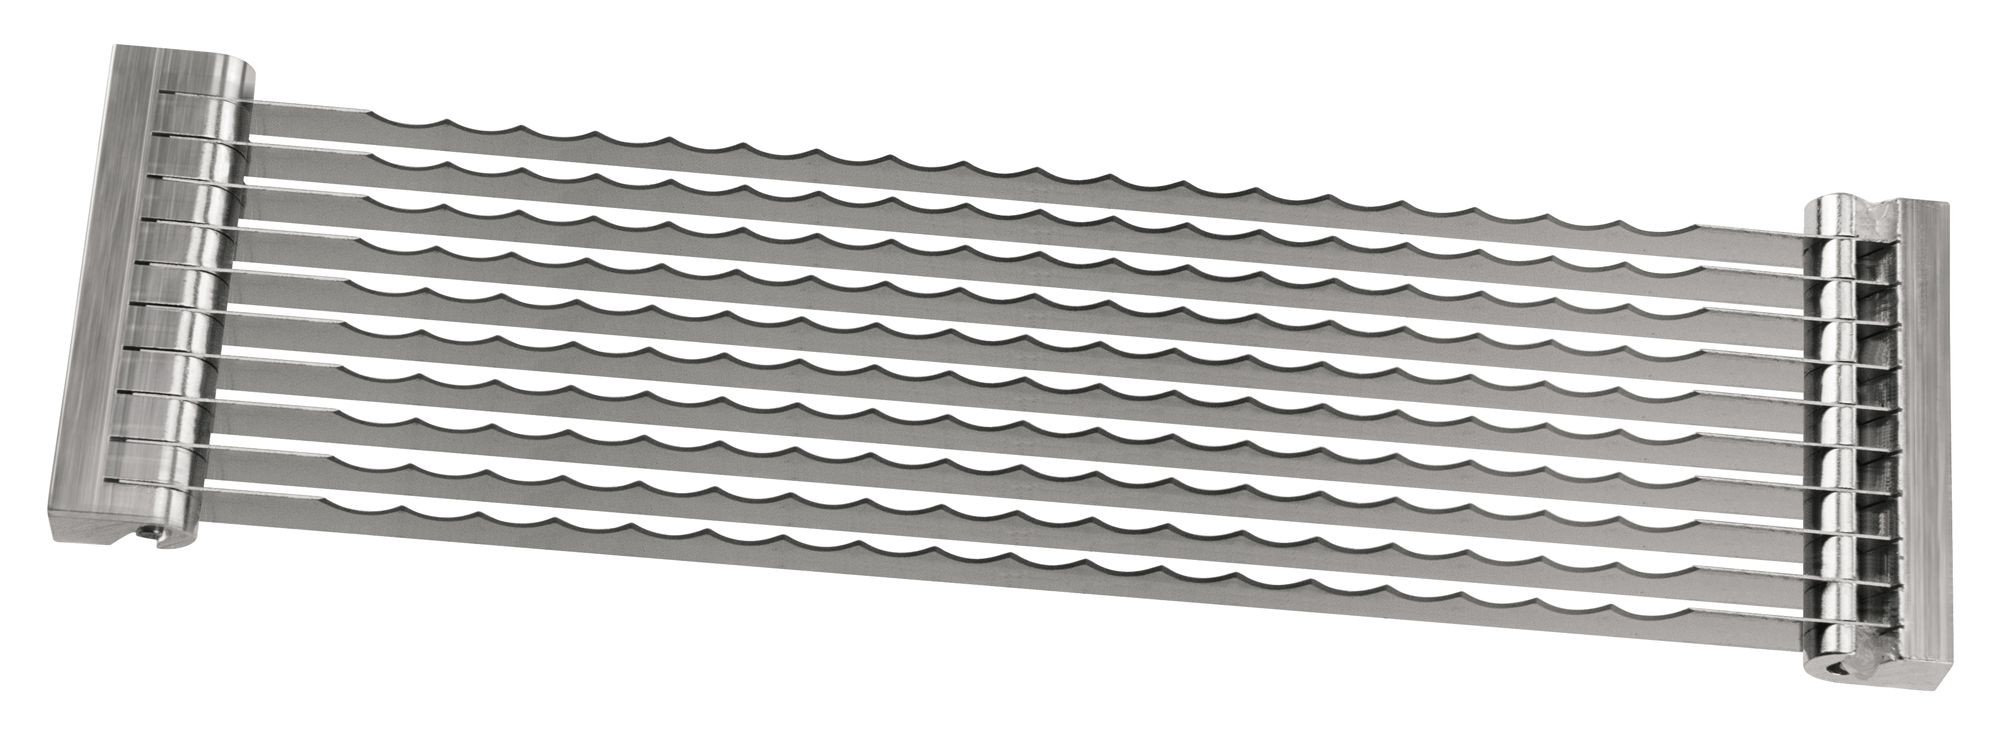 "Winco TTS-250S-B Kattex Replacement 1/4"" Serrated Blade Assembly for TTS-2, TTS-3, TTS-188, and TTS-250"